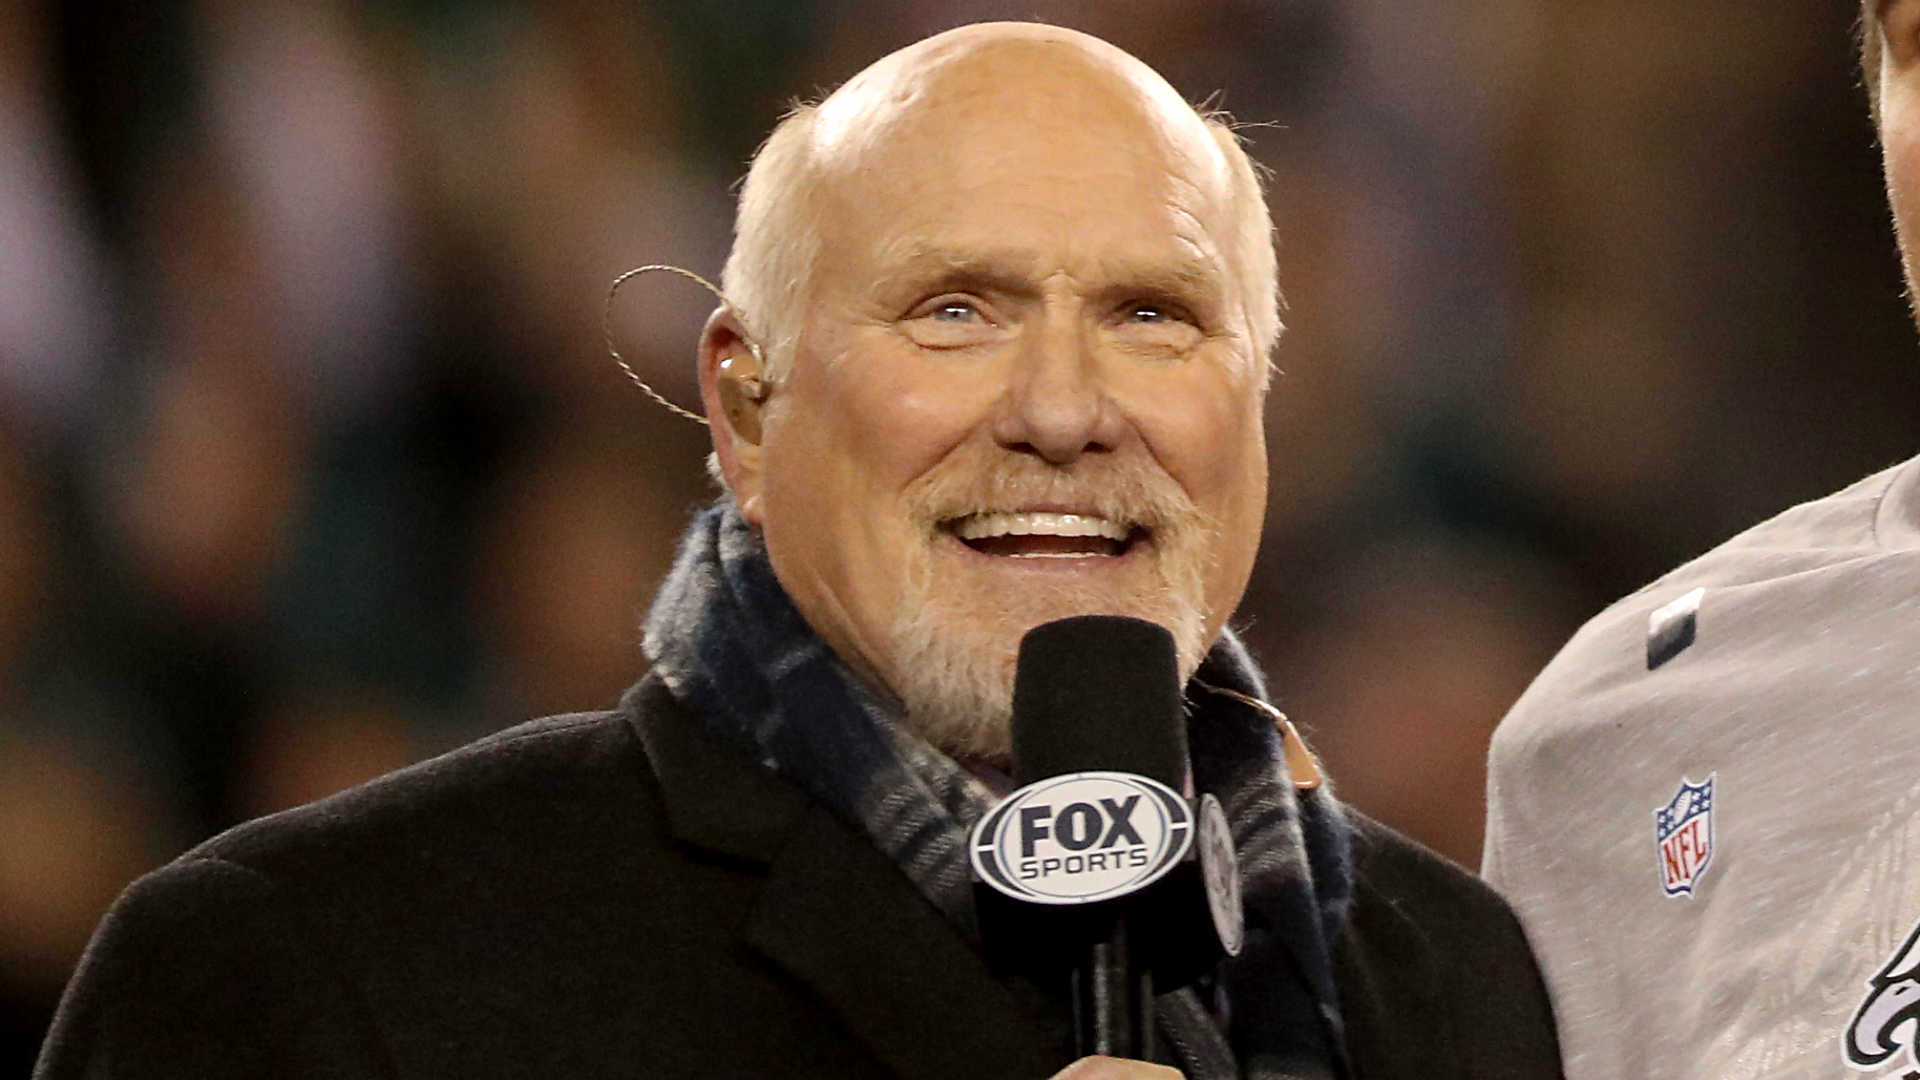 The Right Thing To Do Is Give Credit Where Due And Terry Bradshaw Deserves All Praise He Has Received Over Years